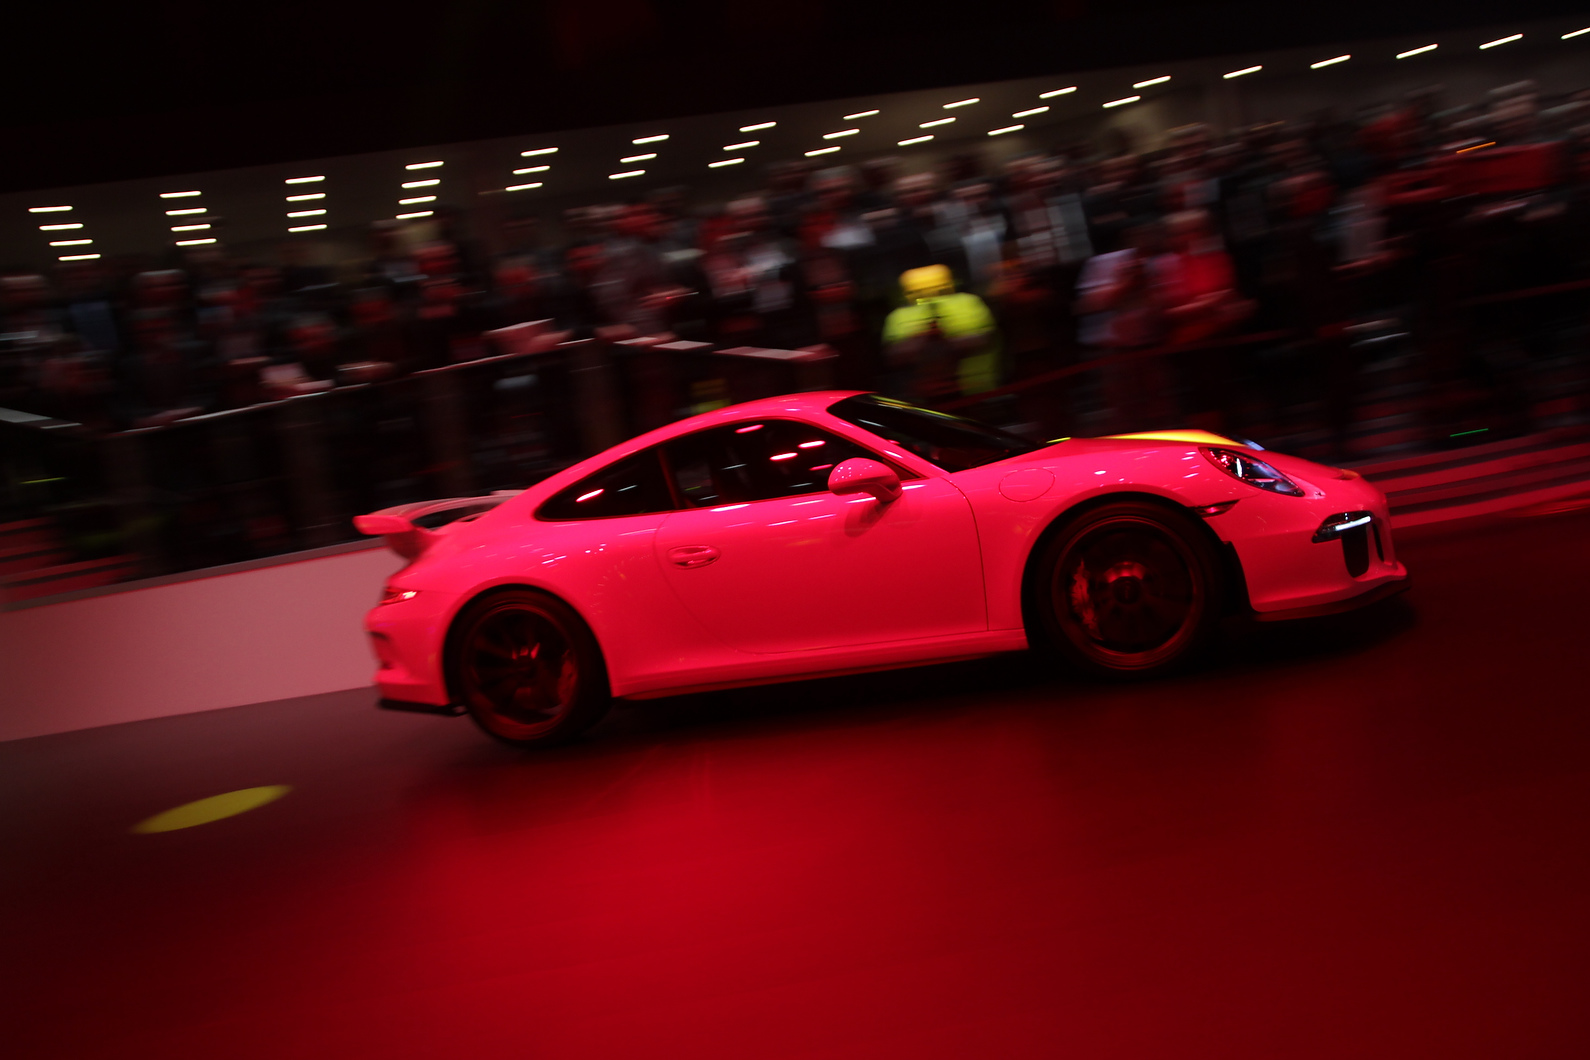 Porsche has heralded the 50th anniversary of the 911 with a new 468bhp race-bred GT3